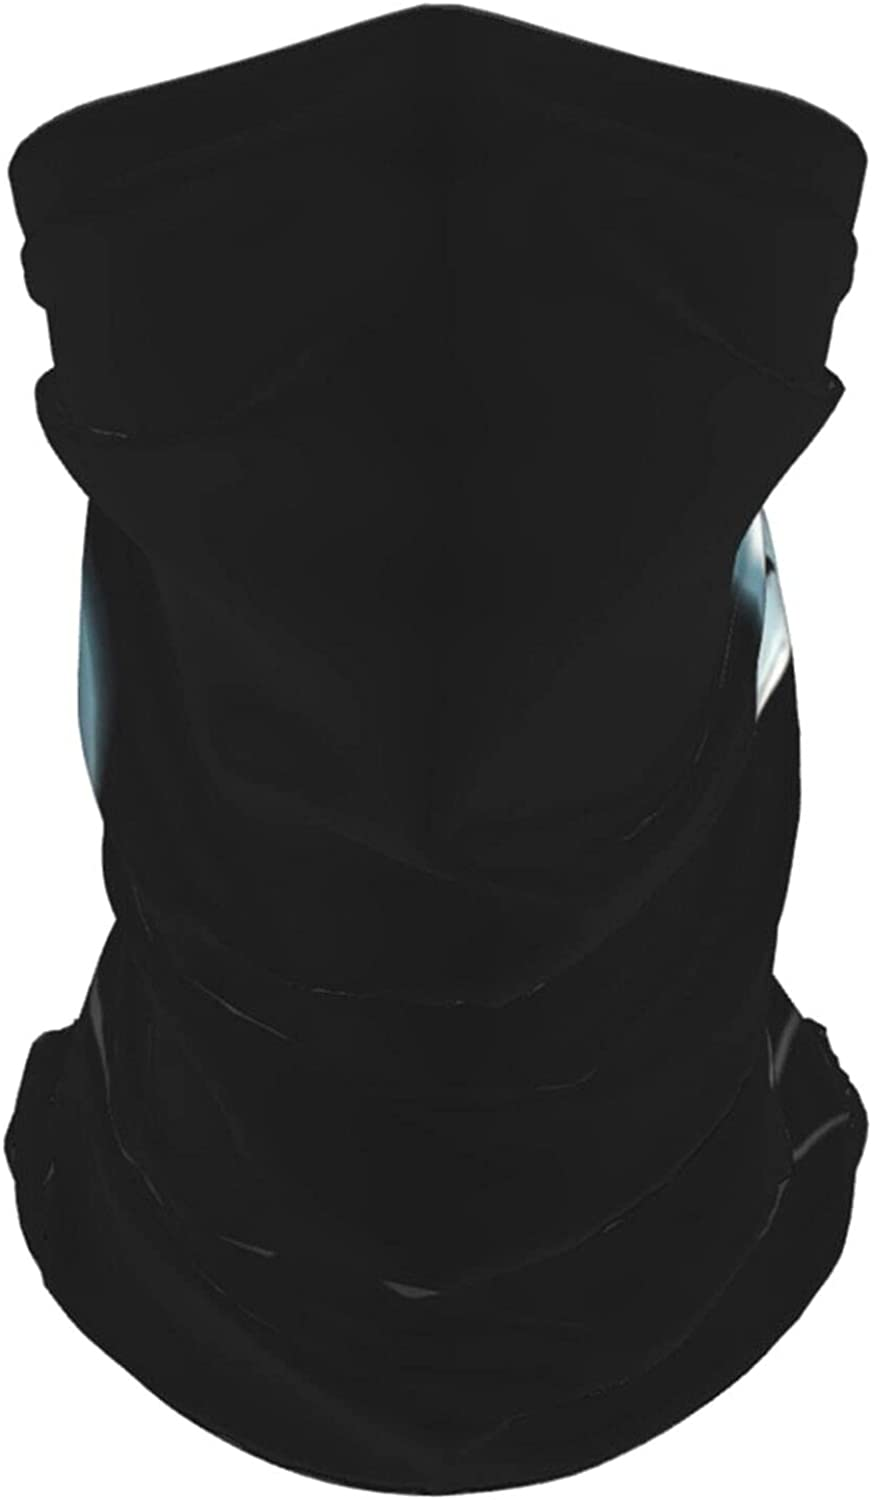 Closeup Portrait of A Halloween Black Cat Summer Ice Silk Breathable Face Mask Neck Gaiter Scarf Bandanas for Fishing,Hiking,Running,Motorcycle and Daily Wear